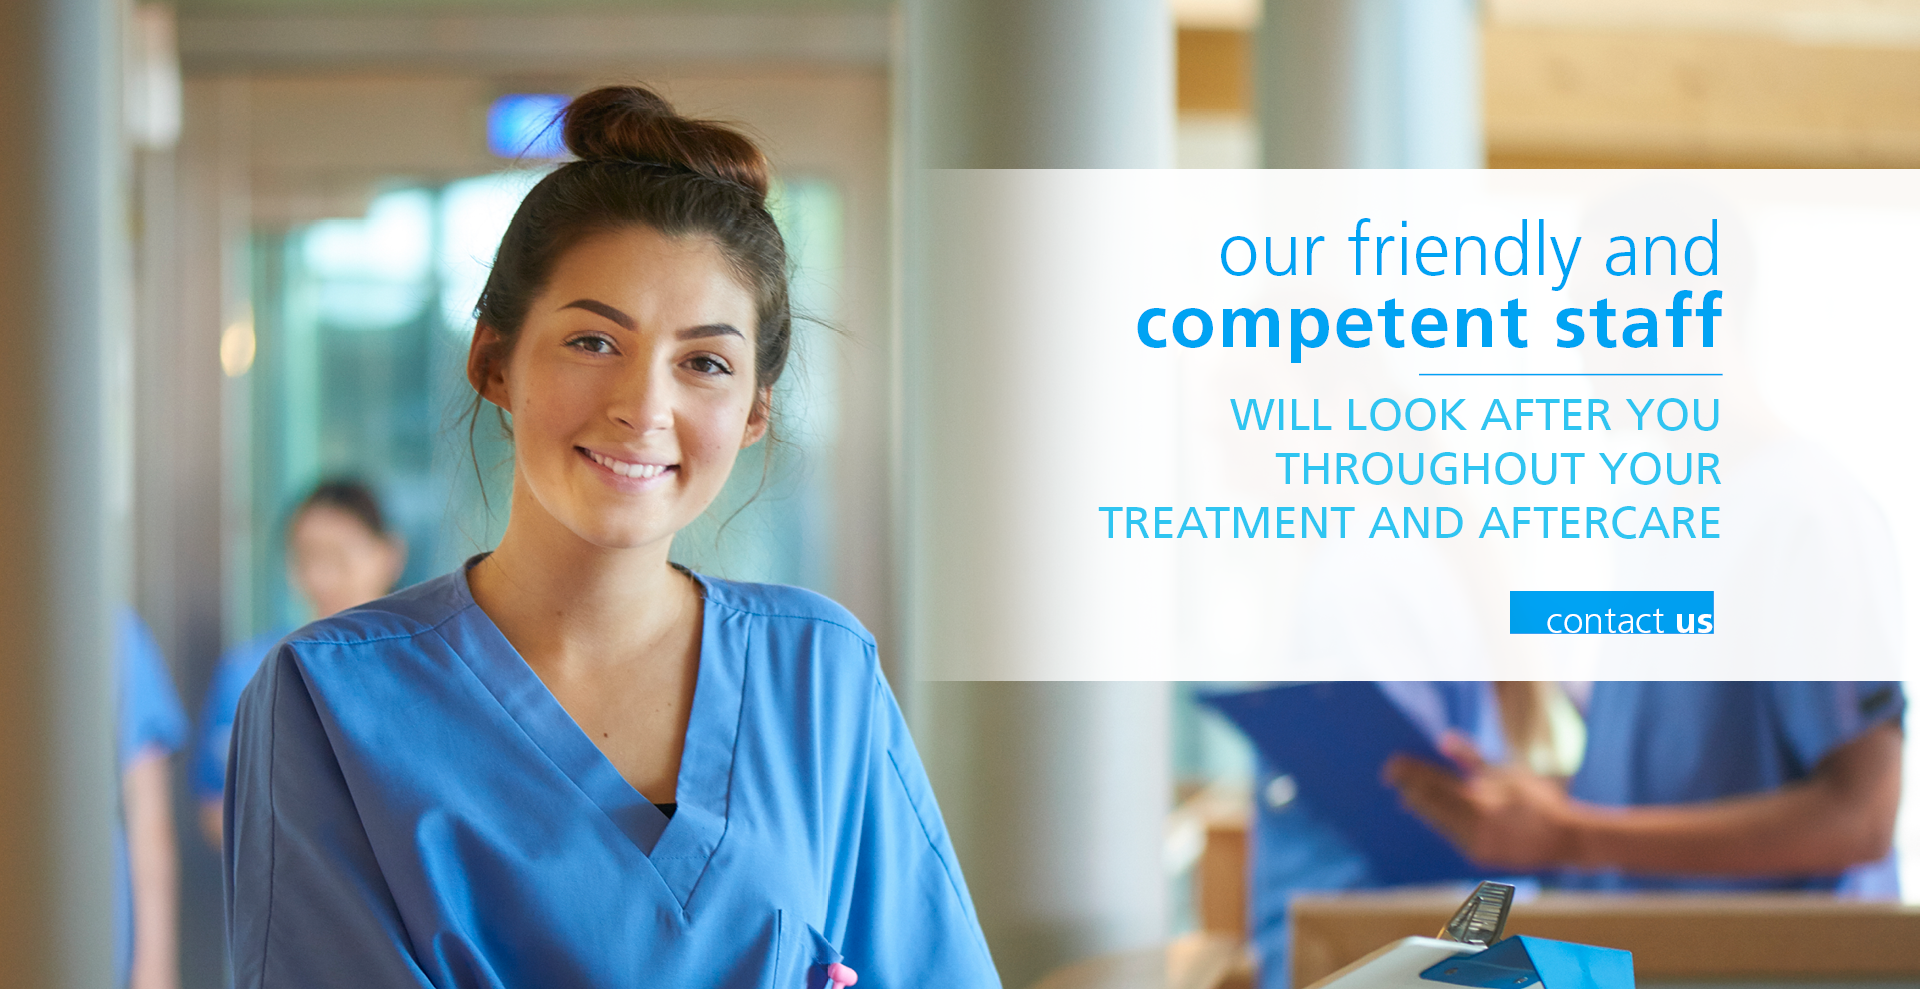 Our friendly and competent staff will look after you throughout your treatment and aftercare. COntact us.